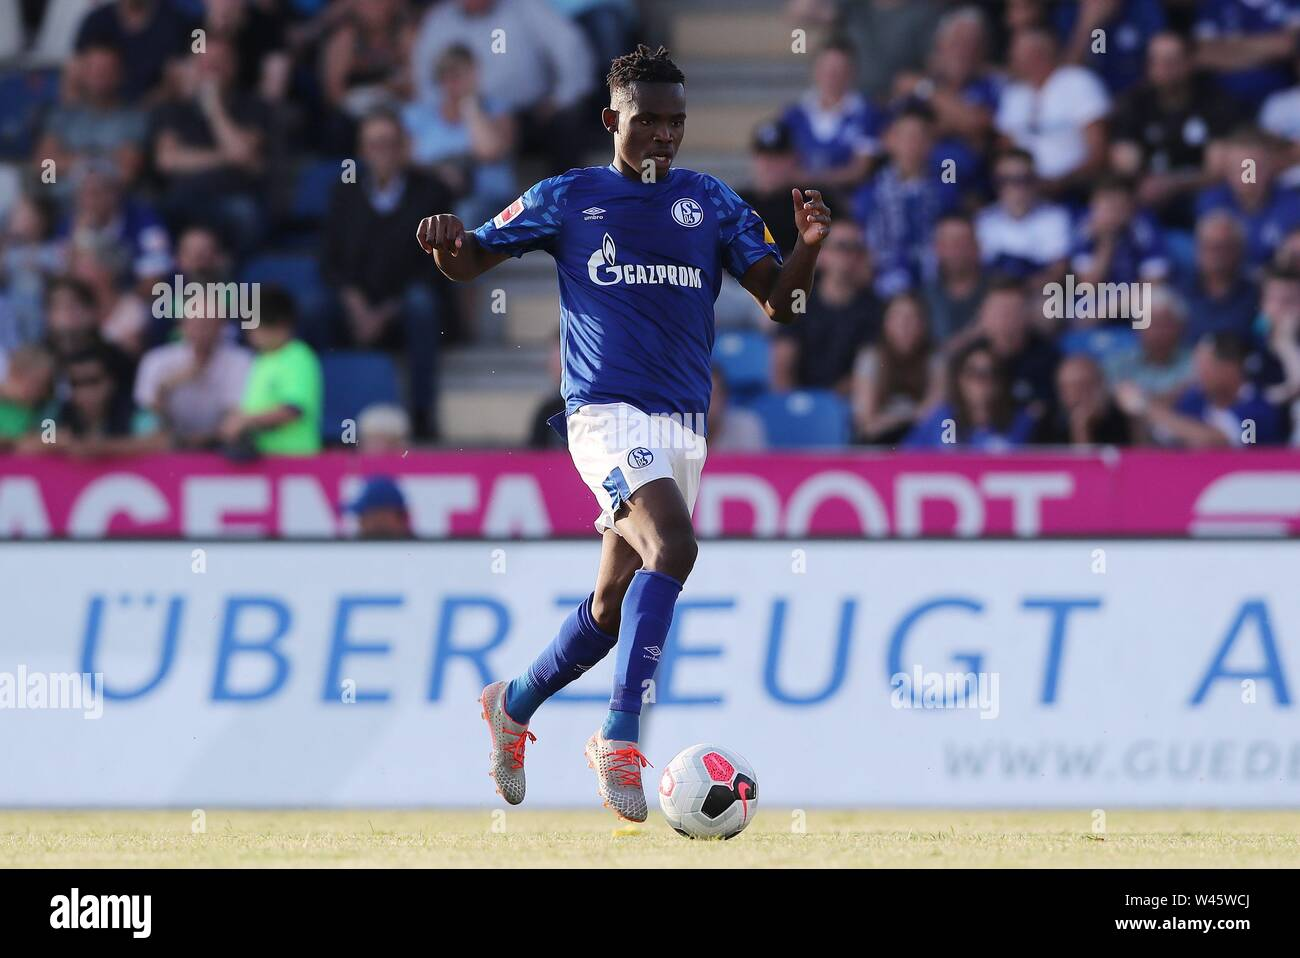 Lotte, Deutschland. 19th July, 2019. firo: 19.07.2019, football, 1.Bundesliga, season 2019/2020, friendly match, FC Schalke 04 - Norwich City Rabbi MATONDO, Schalke, single action | usage worldwide Credit: dpa/Alamy Live News - Stock Image